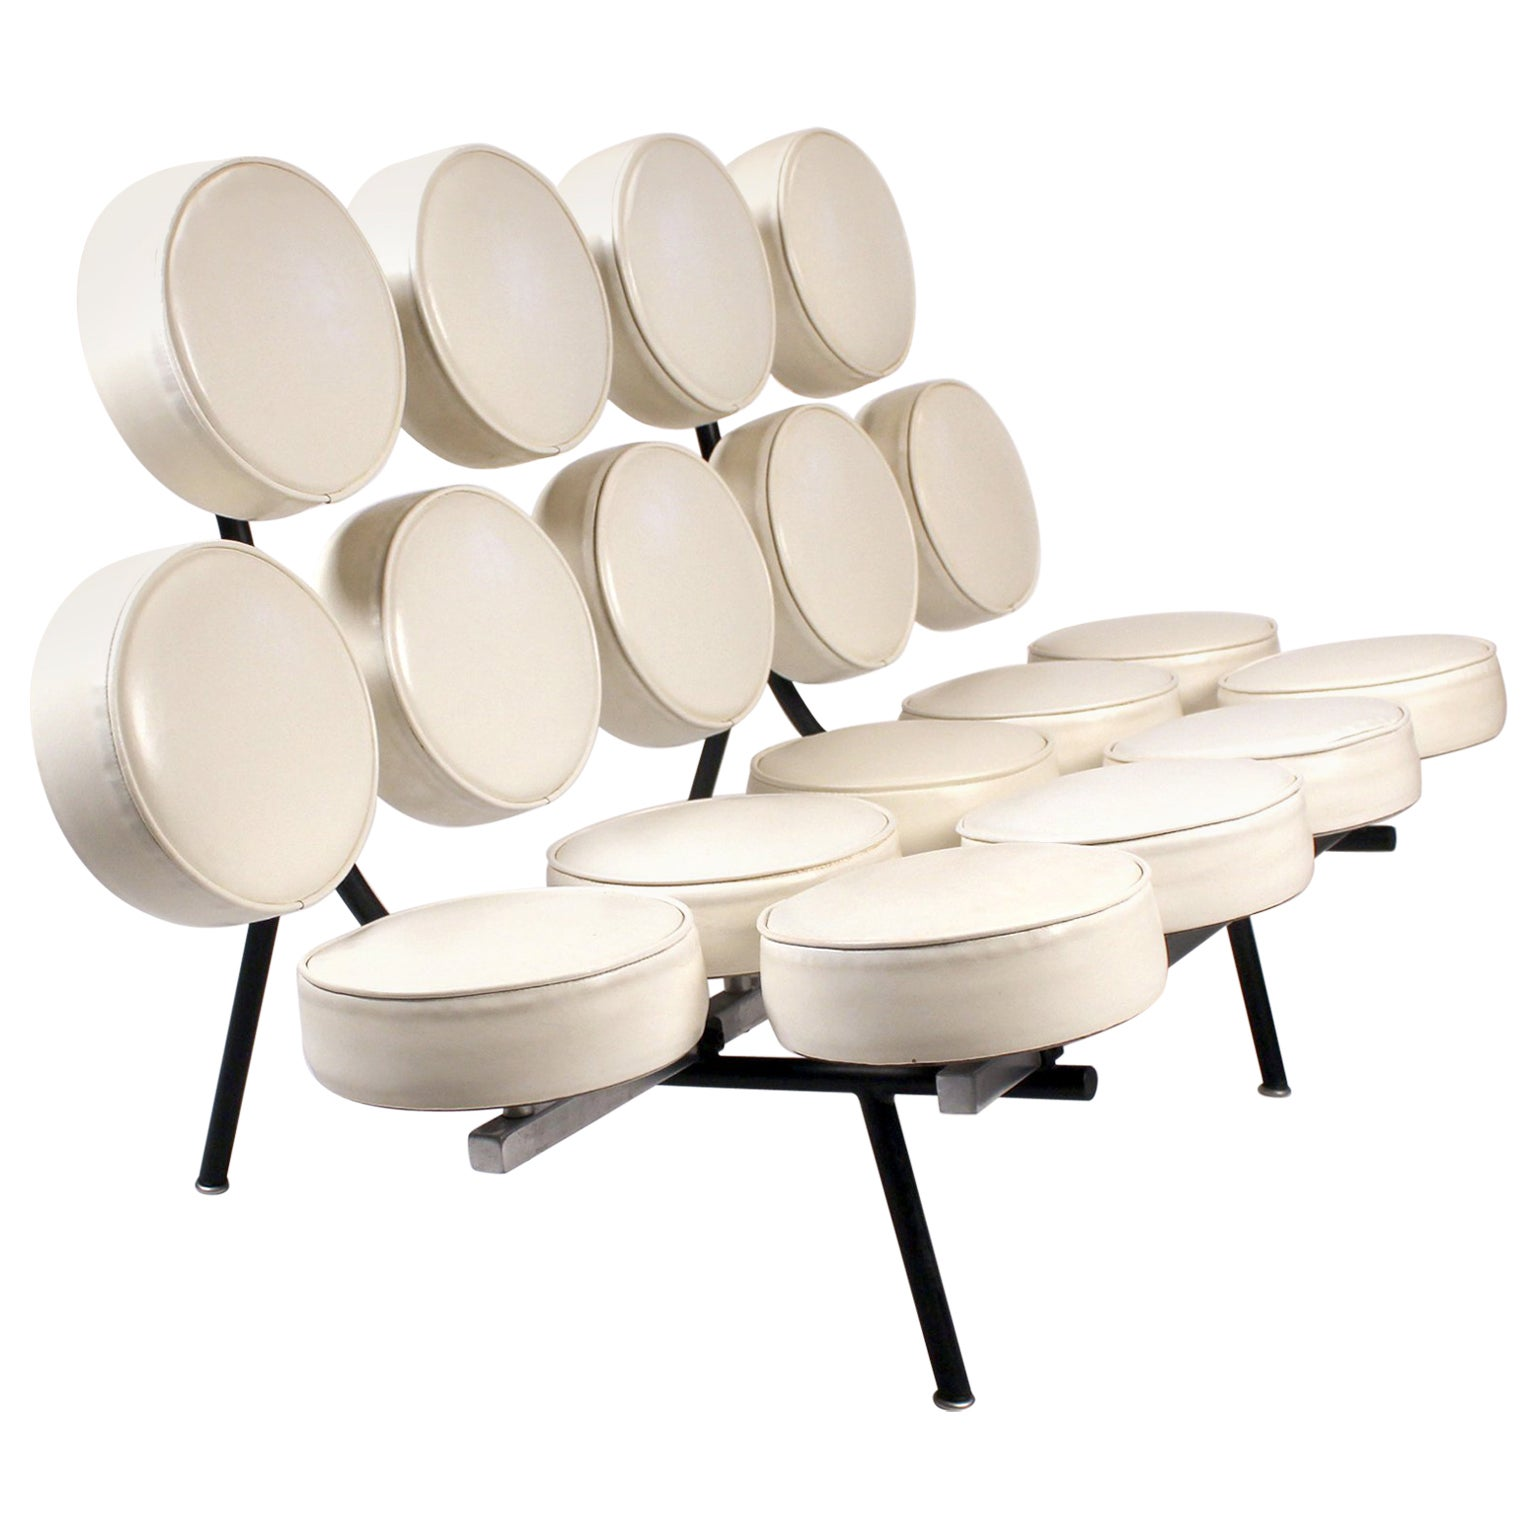 Early Marshmallow Sofa by George Nelson for Herman Miller